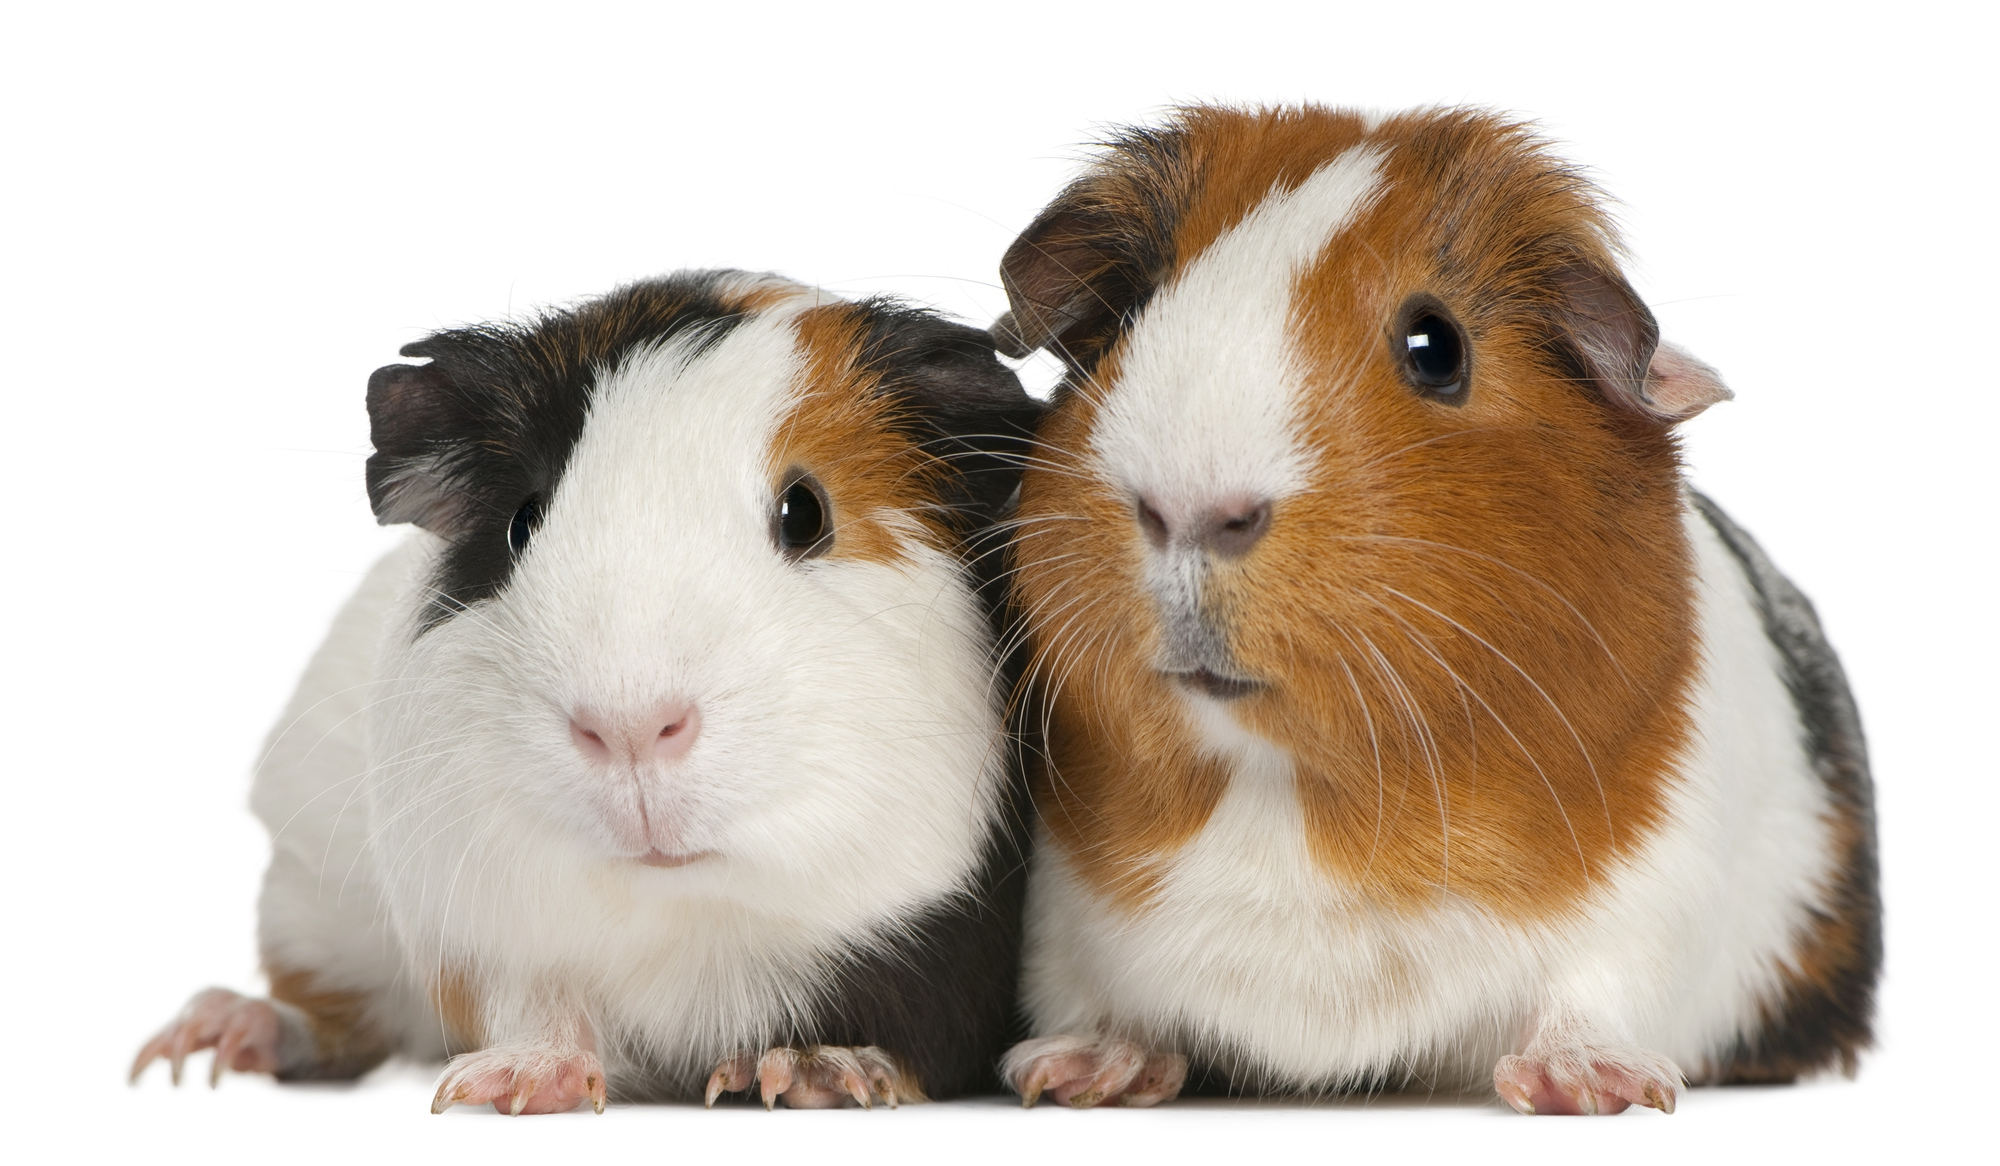 guinea pig wallpapers images photos pictures backgrounds